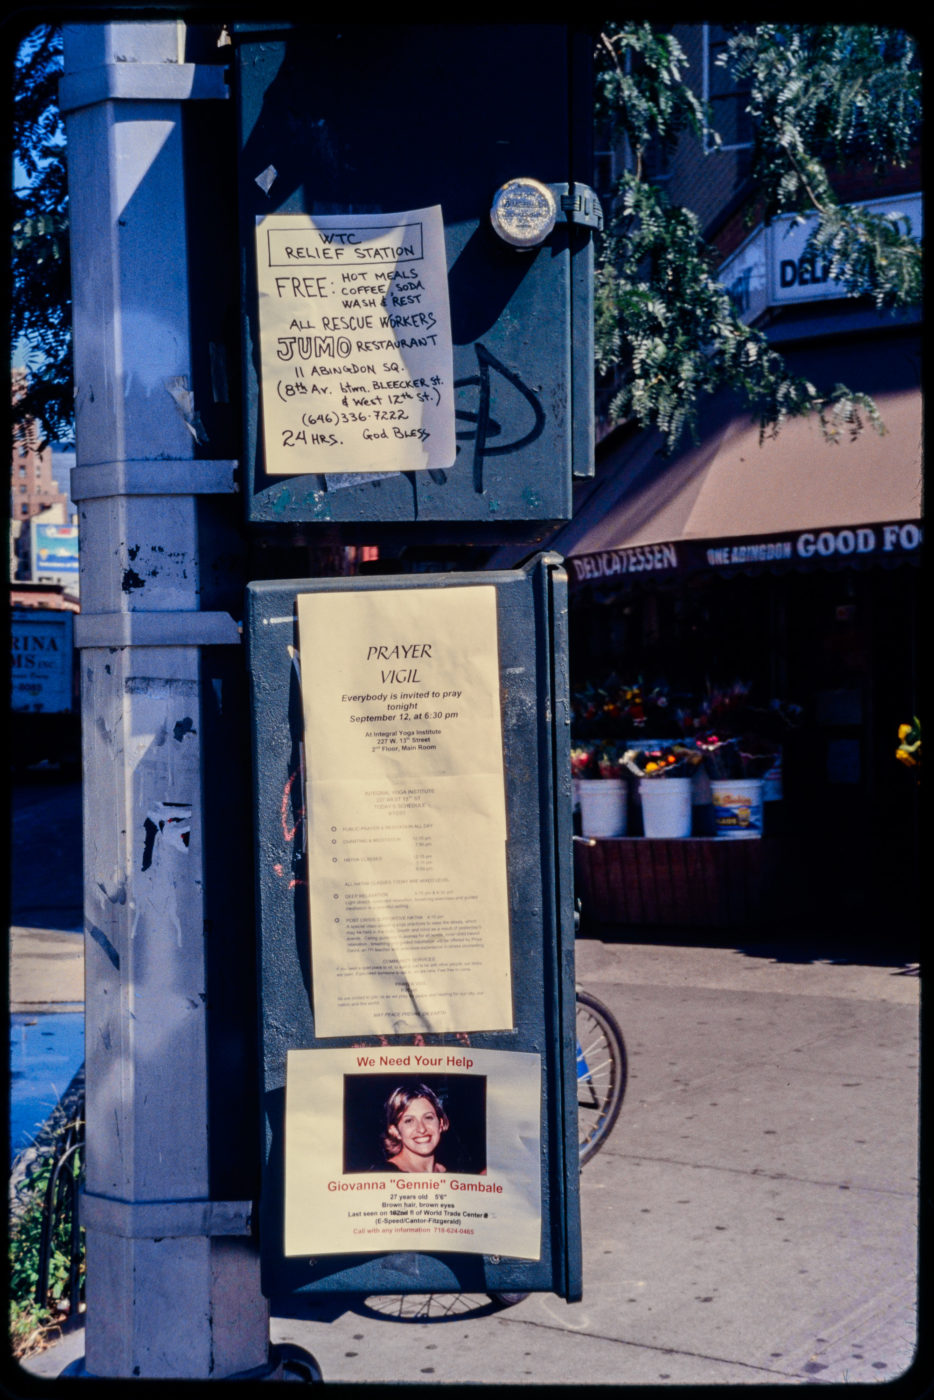 Relief Station, Vigil, and a Missing Loved One Advertised on a Phone Box Outside One Abingdon Delicatessen